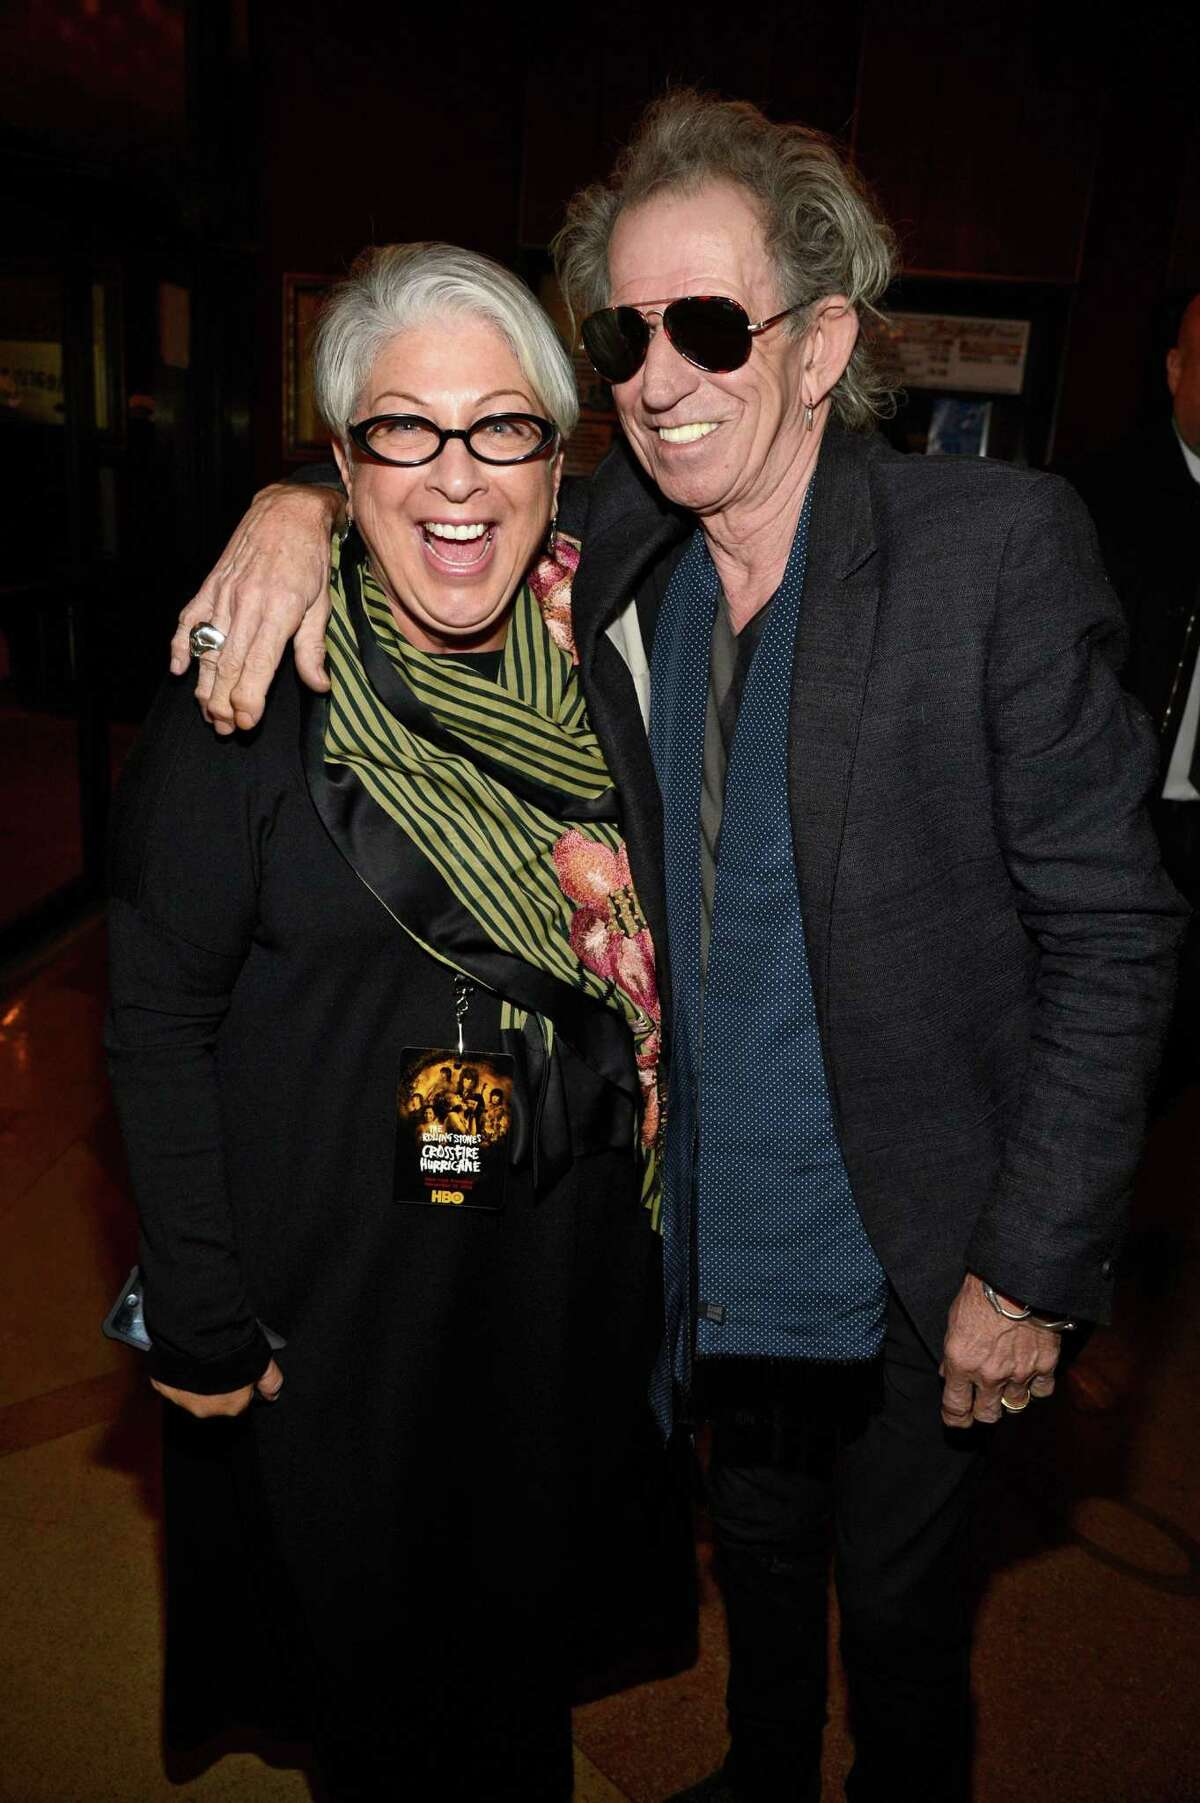 Shelley Lazar and Keith Richards of the Rolling Stones at the HBO screening of the movie